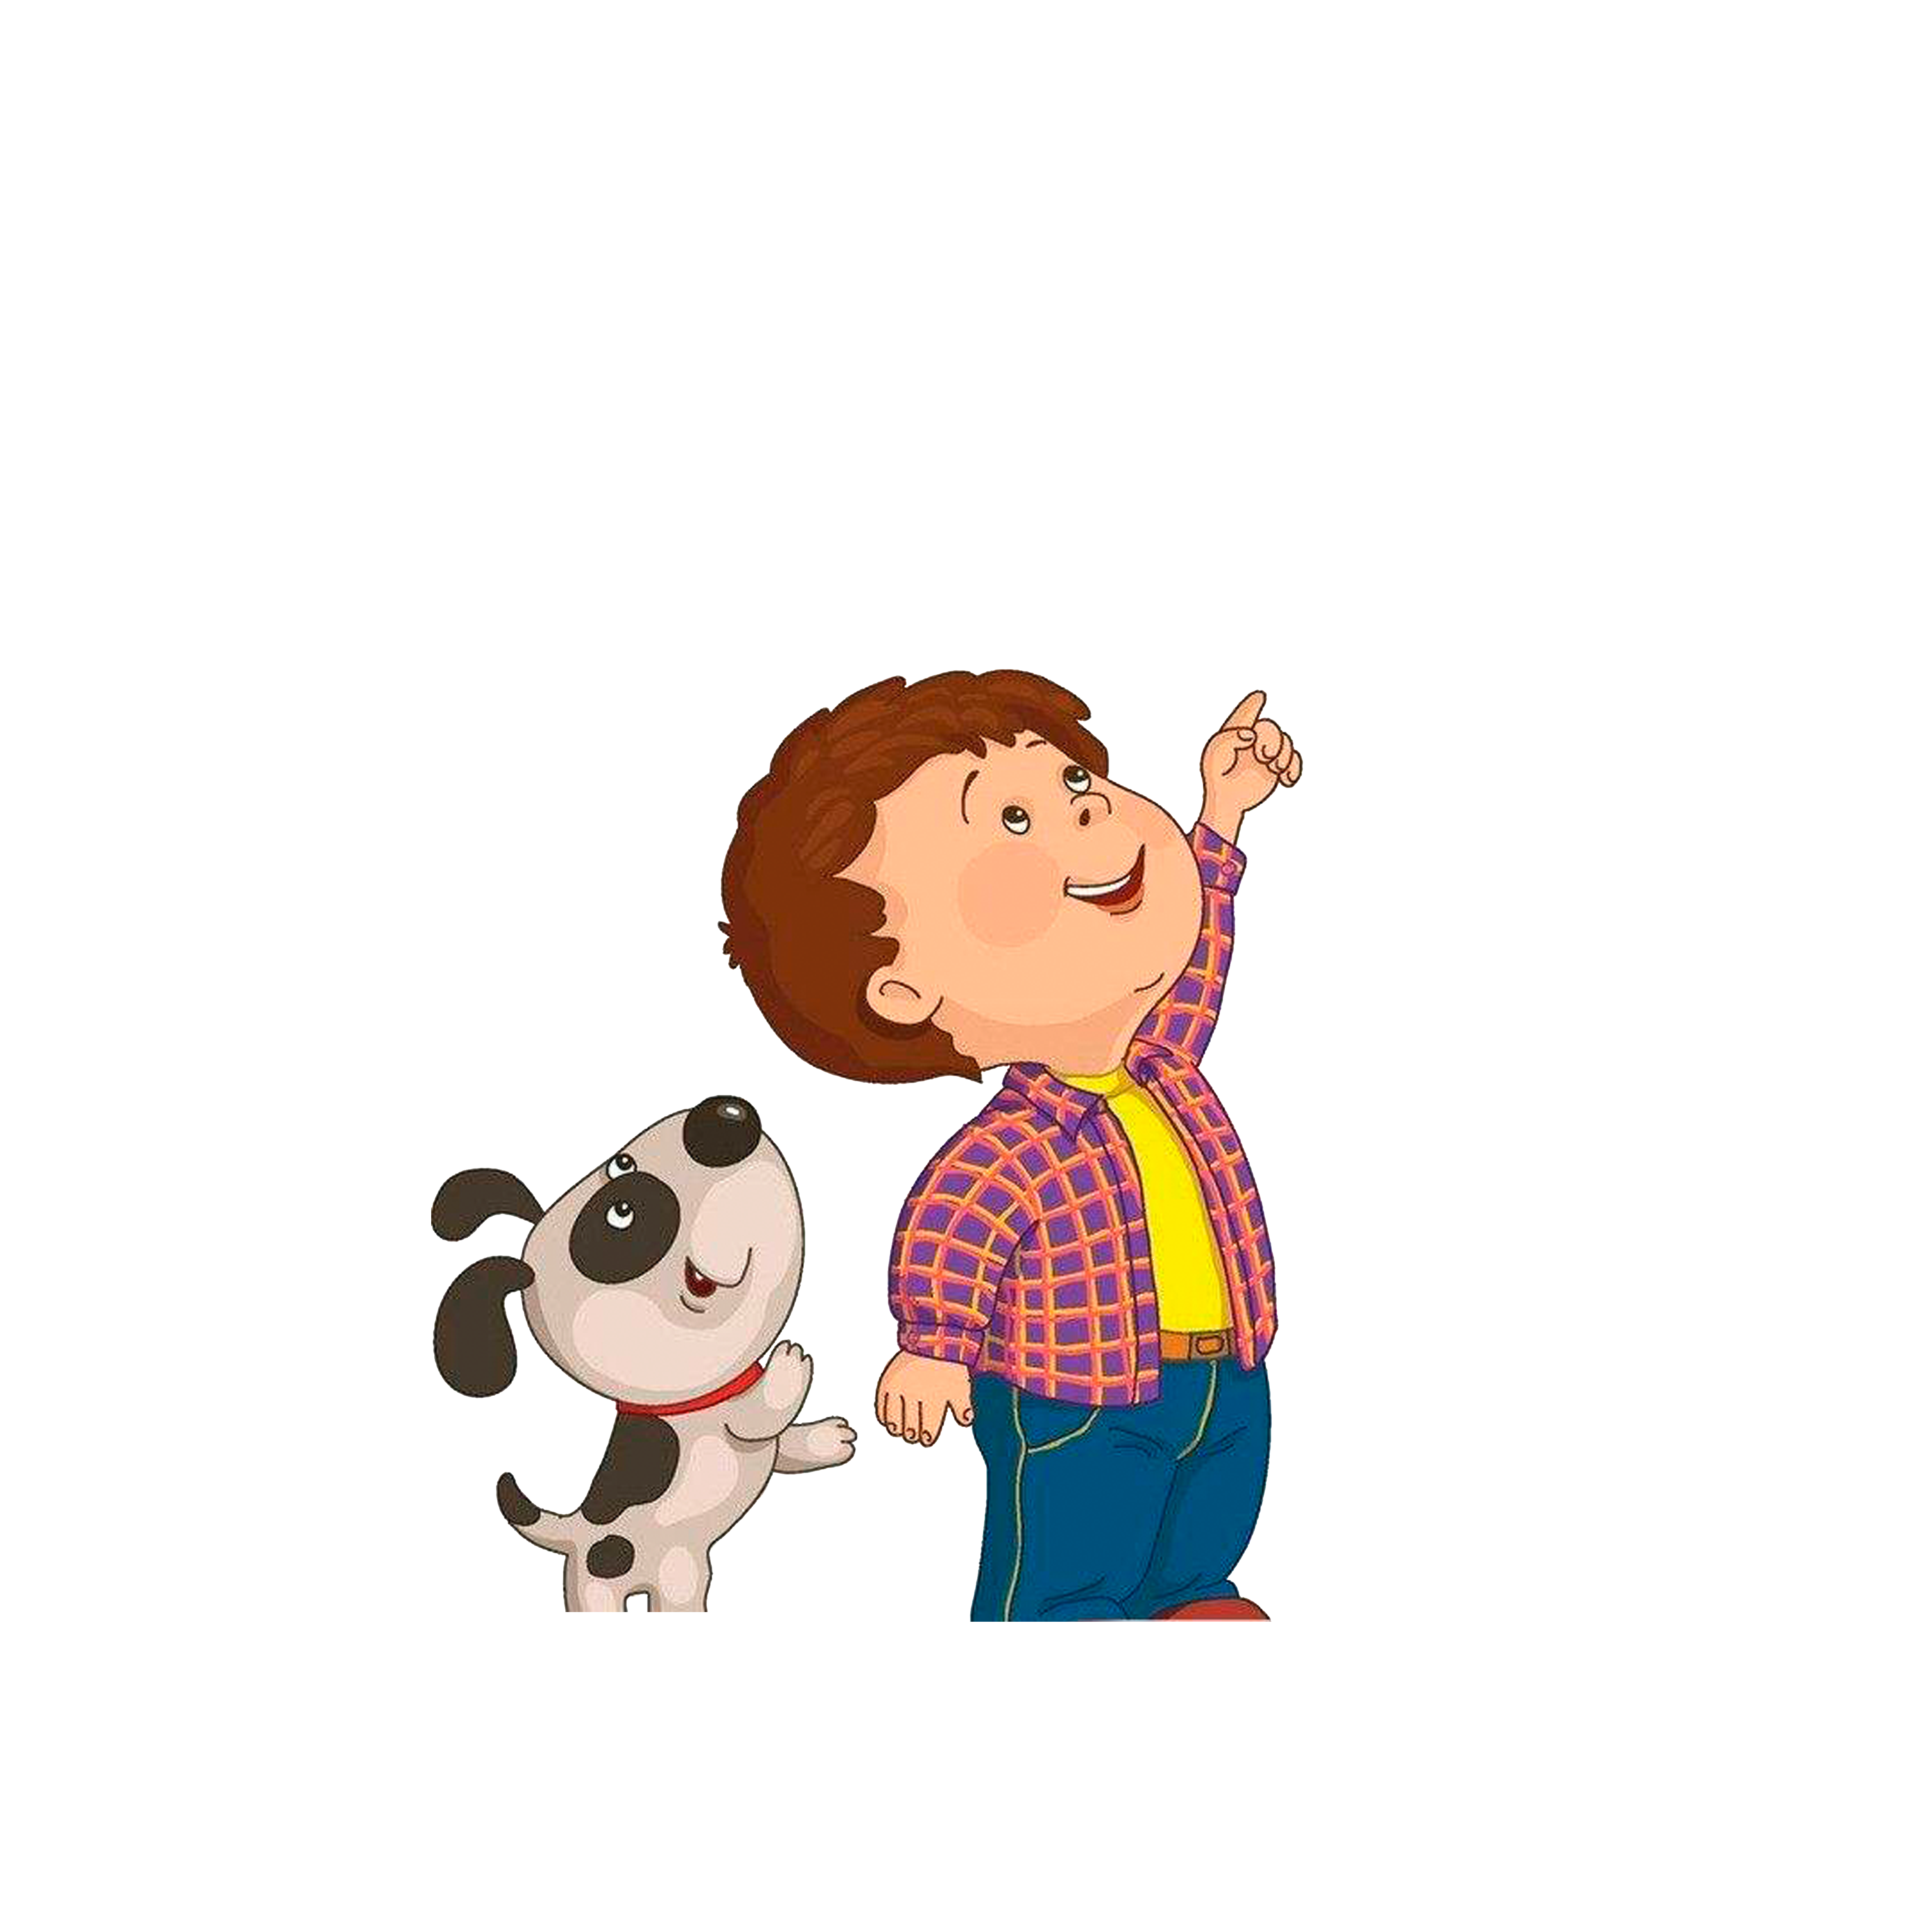 Dogs clipart boy. Child drawing clip art